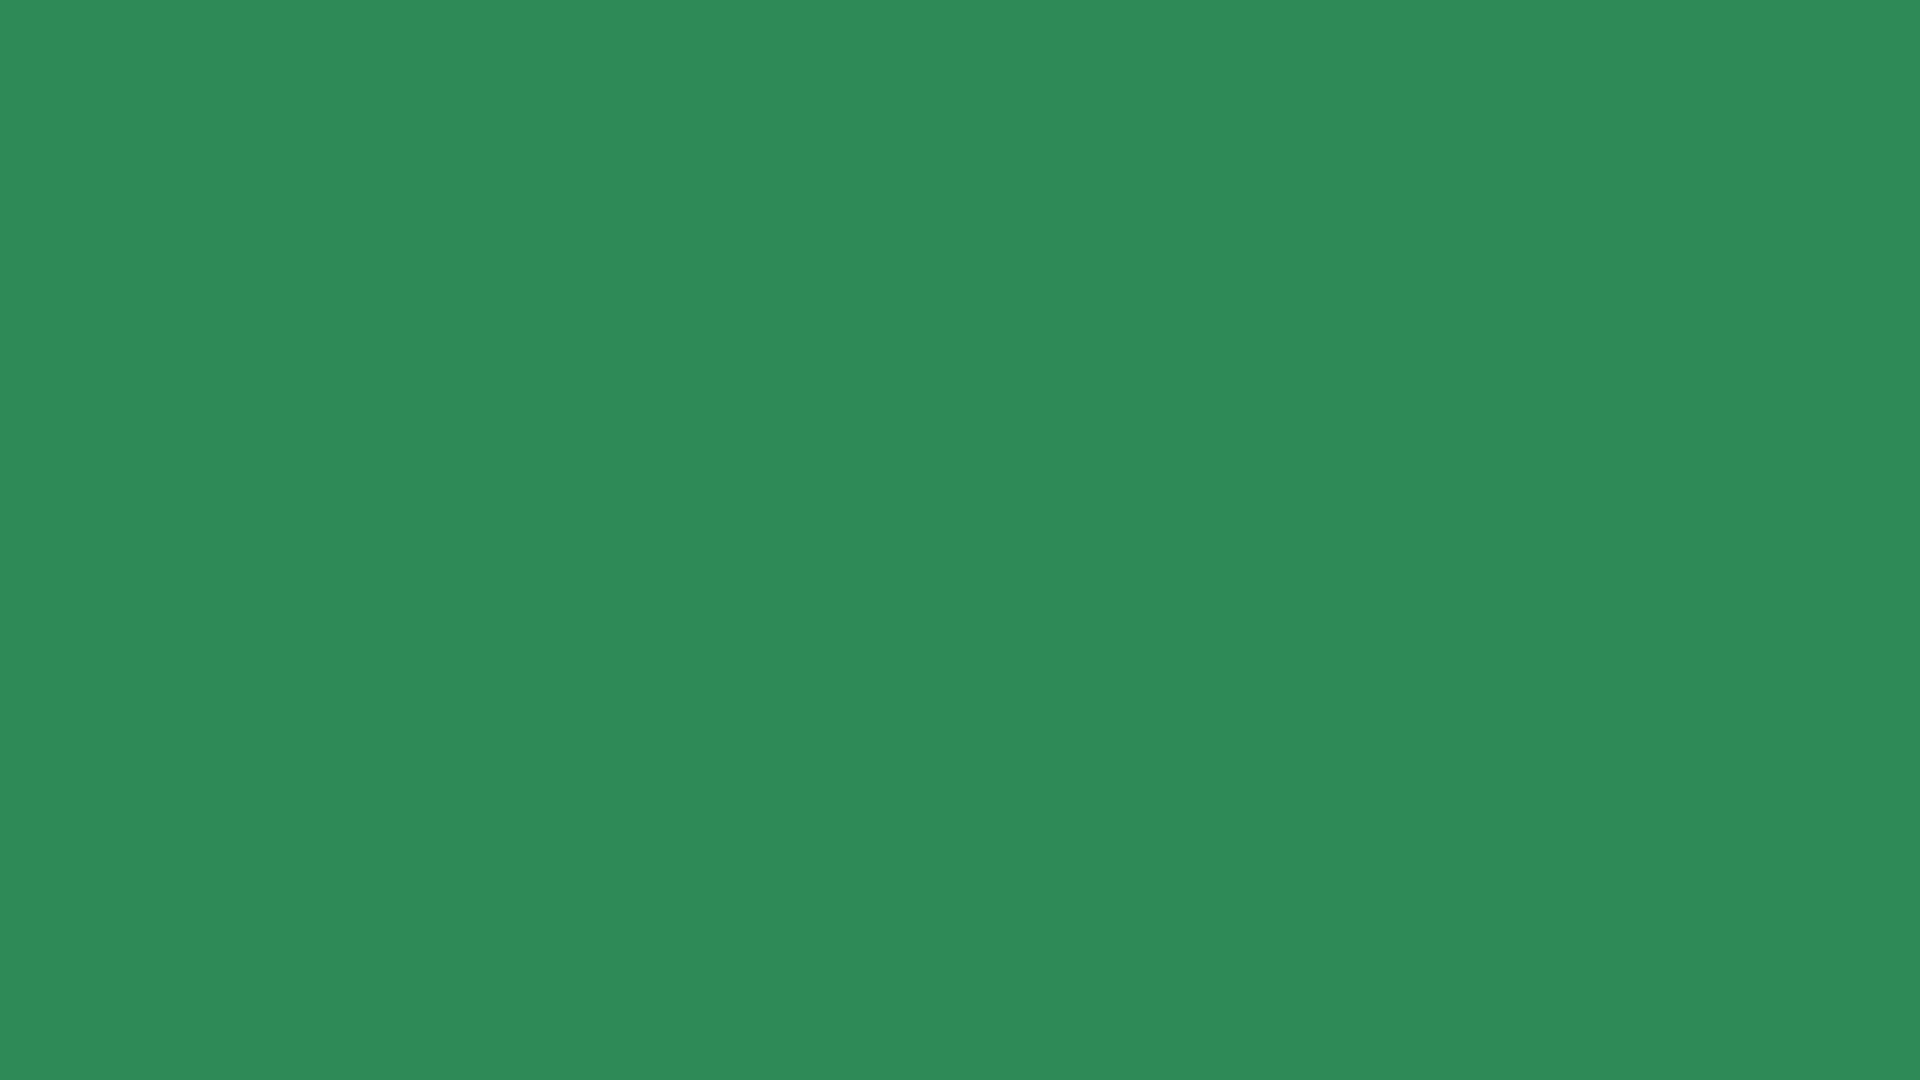 1920x1080 Sea Green Solid Color Background